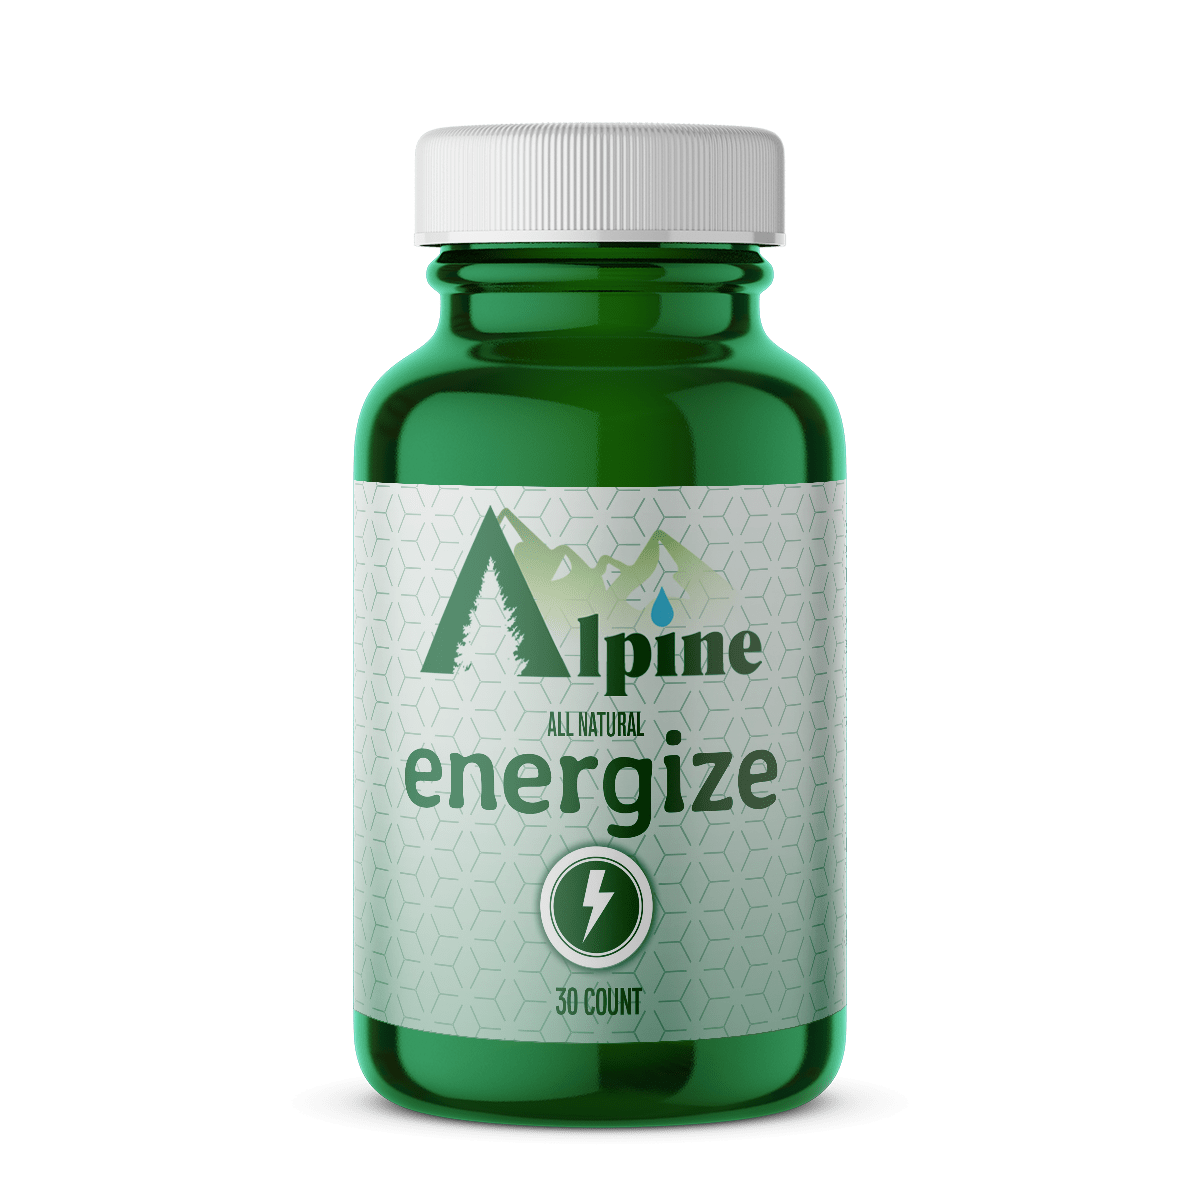 cbd, cannabidiol, hemp, cbd products, hemp products, capsules, cbd capsule, energy